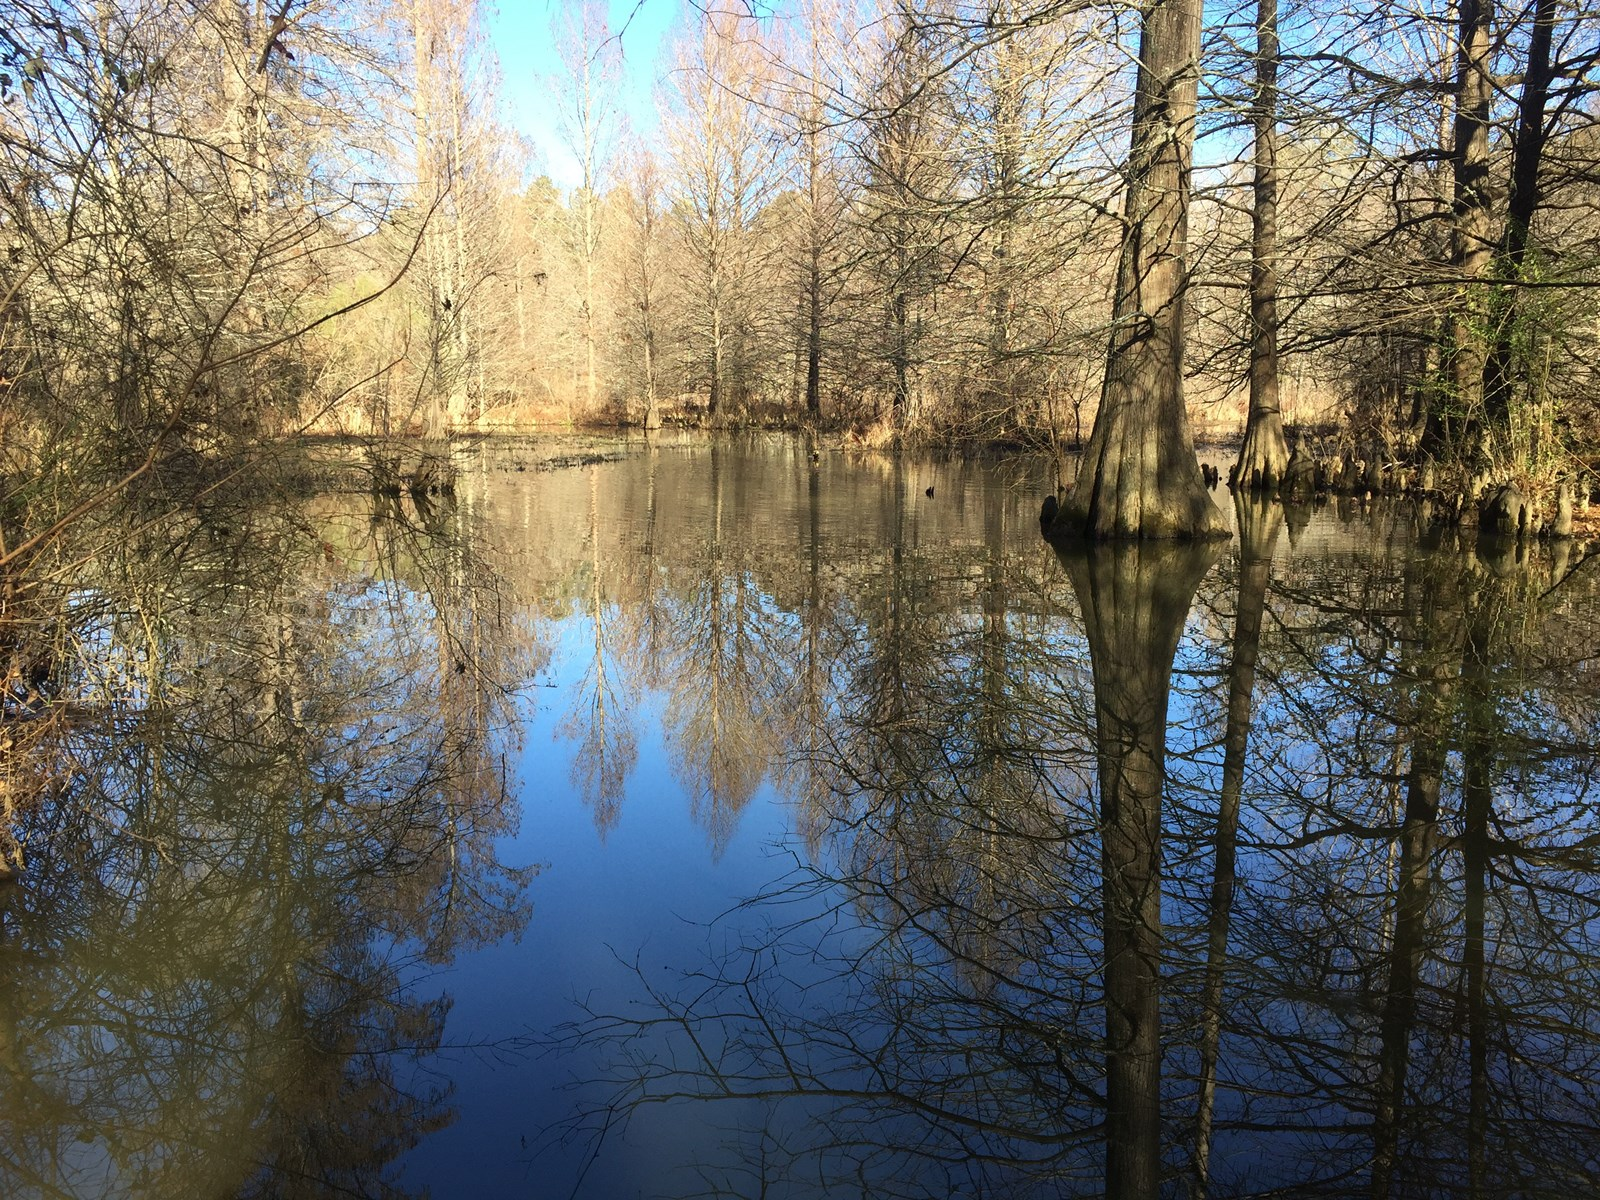 East Texas Land For Sale, Creek, Huge Cypress trees, 23.4 ac